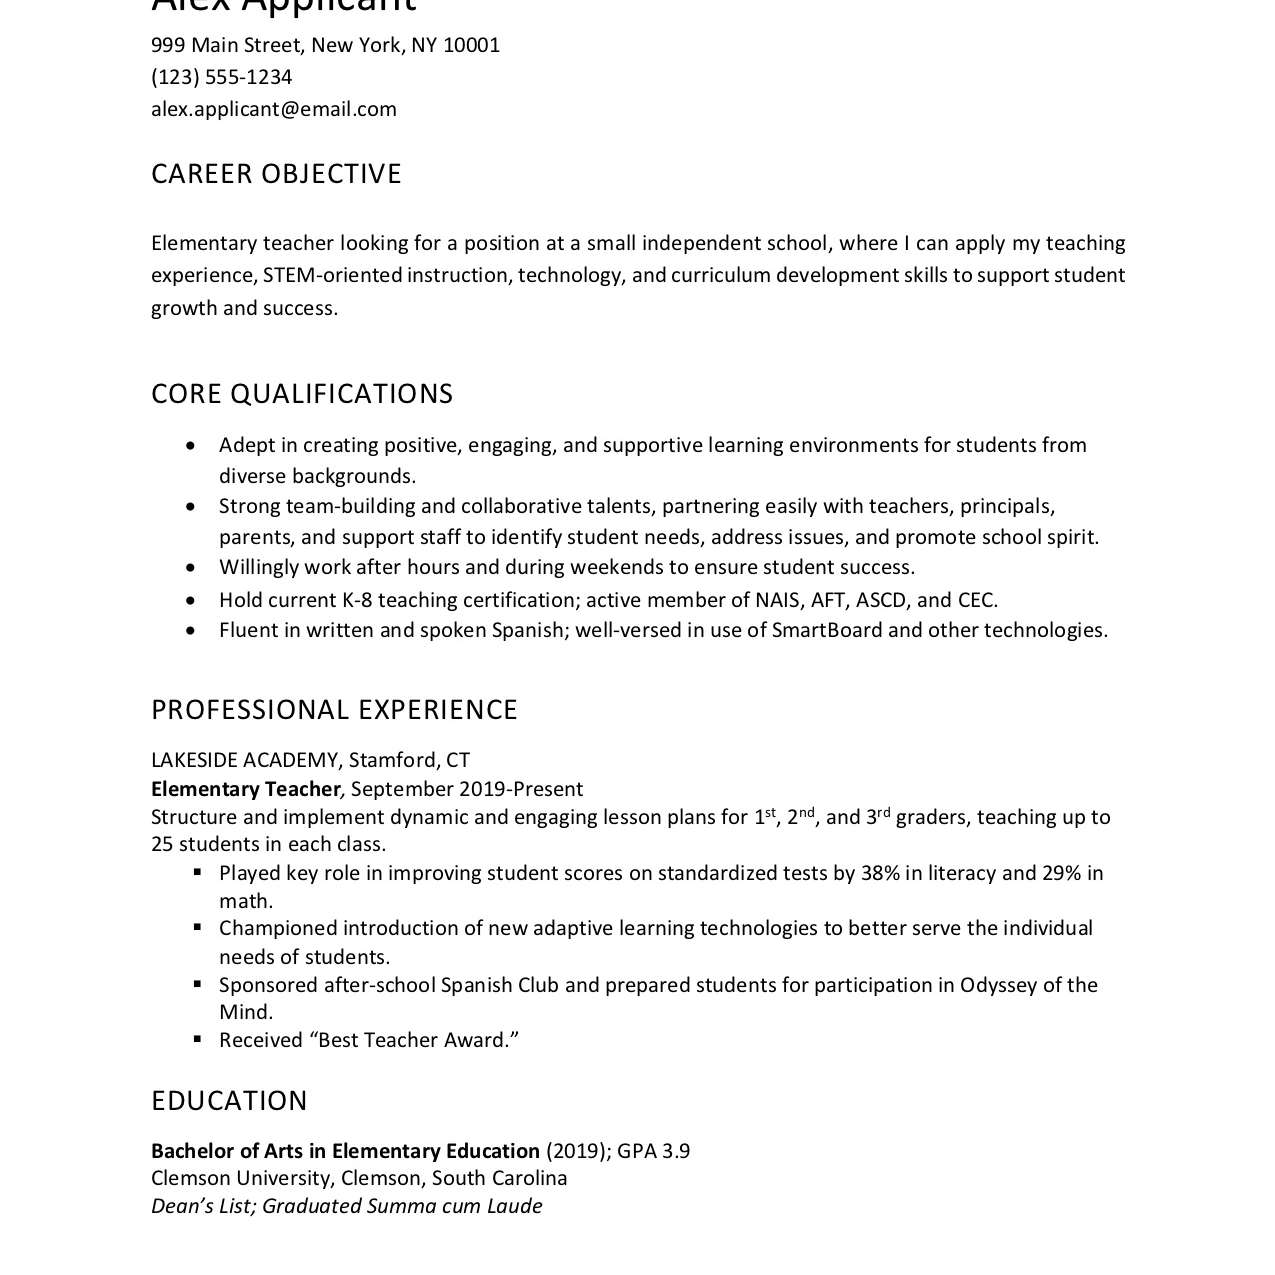 resume objective examples and writing tips work from home 2063595res airline format Resume Work From Home Resume Objective